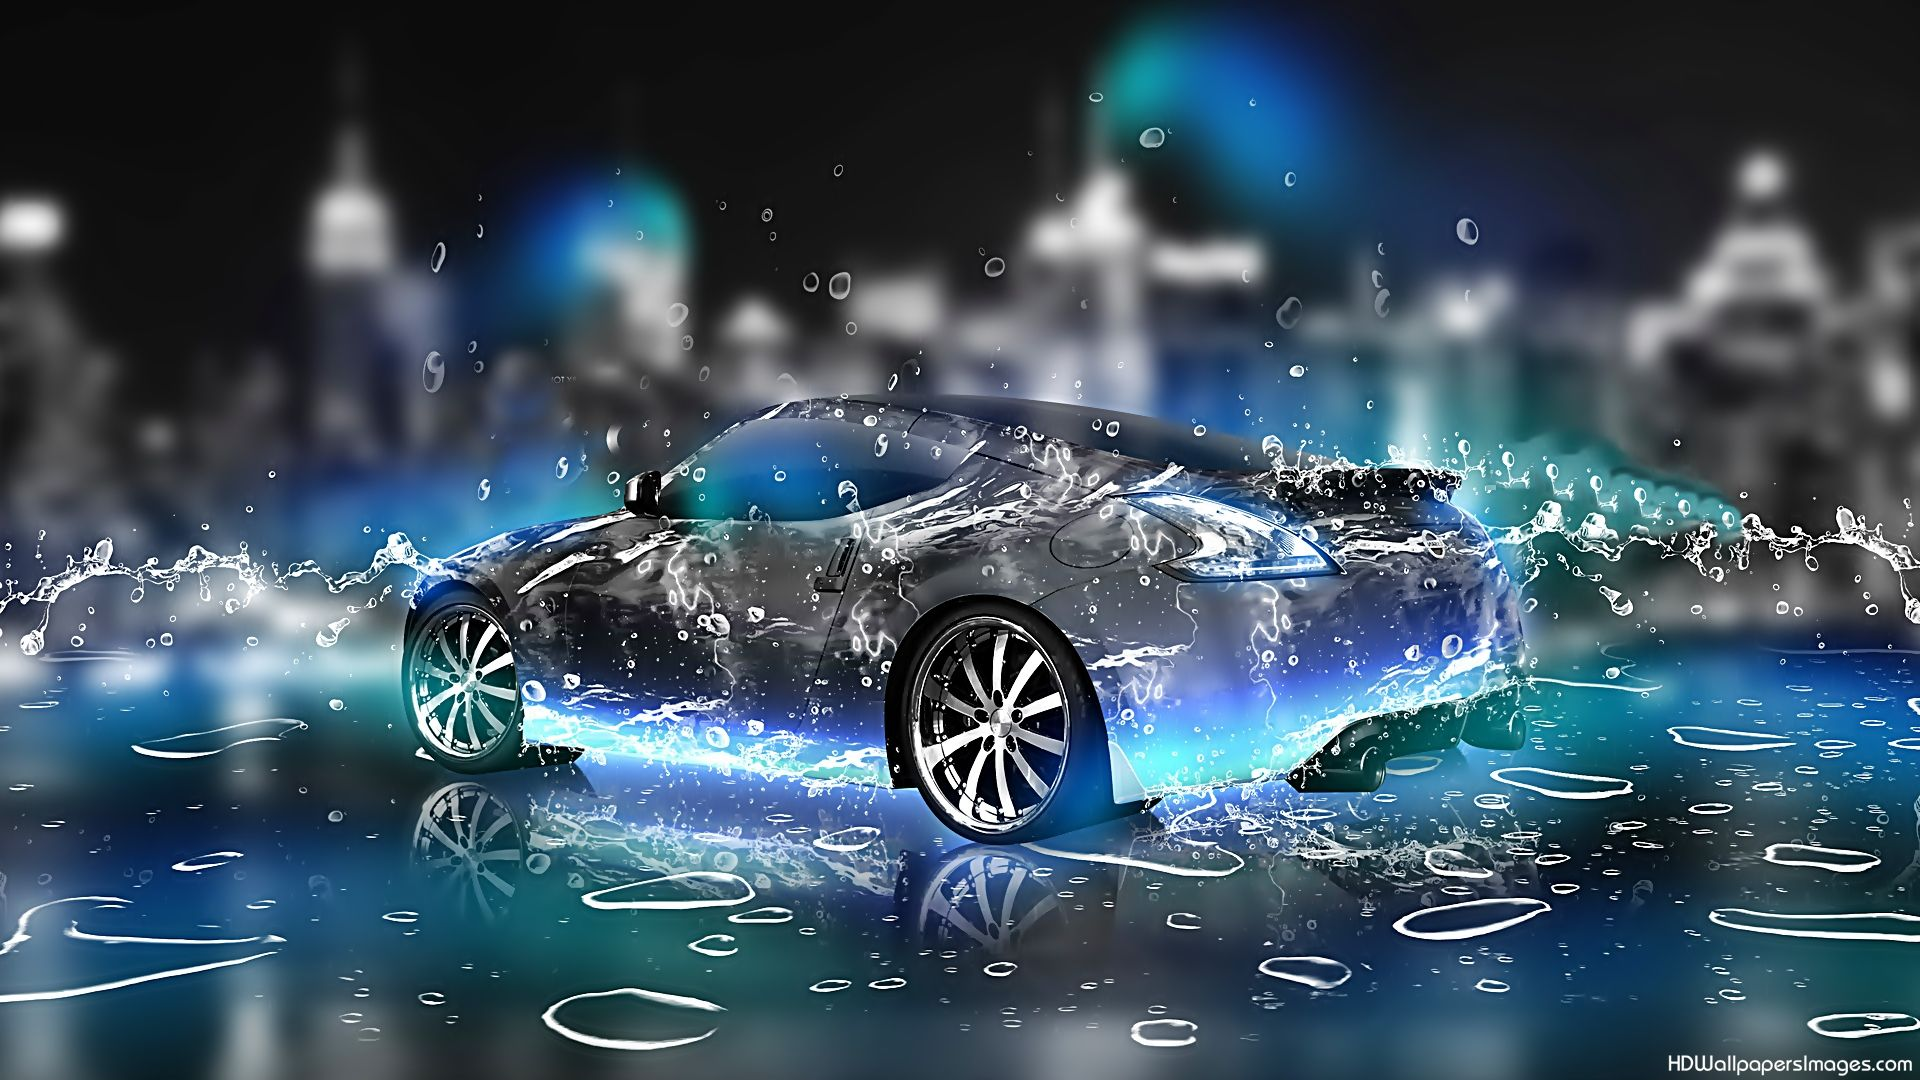 Cool 3d Car Wallpaper Best A411 Download 3d Desktop Wallpapers 3d Wallpaper For Pc Wallpaper Pc Desktop Wallpapers Backgrounds